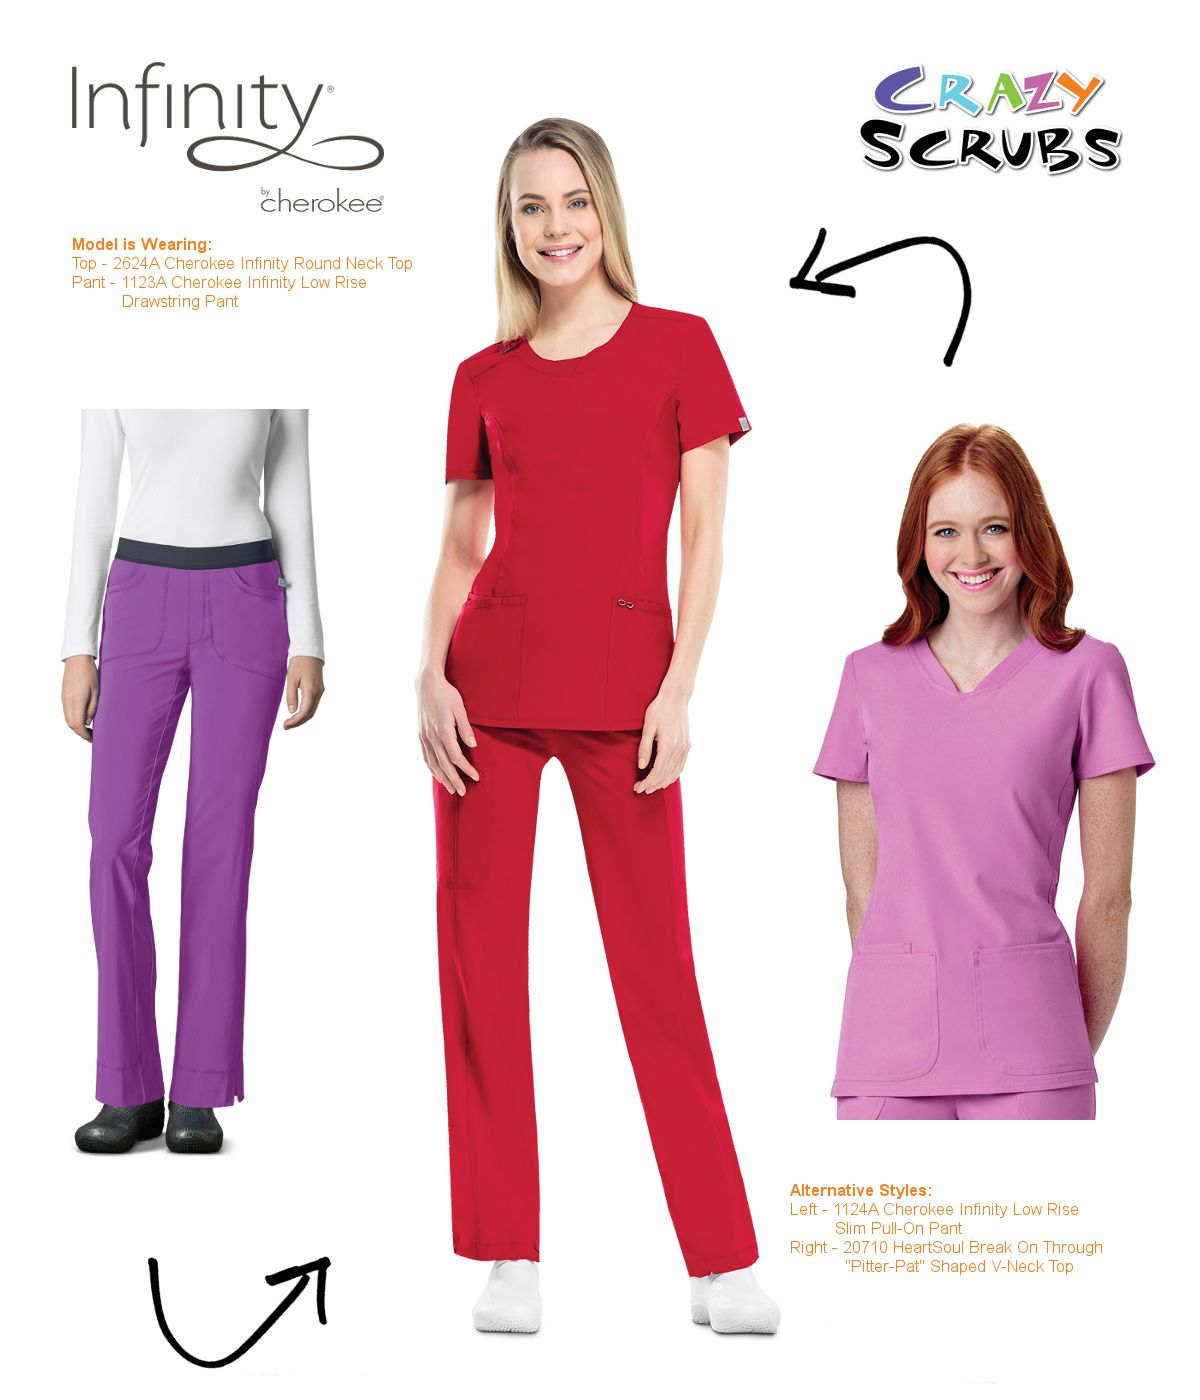 fashion s by uniforms of infinity features today ootd pin scrubs the day outfit cherokee